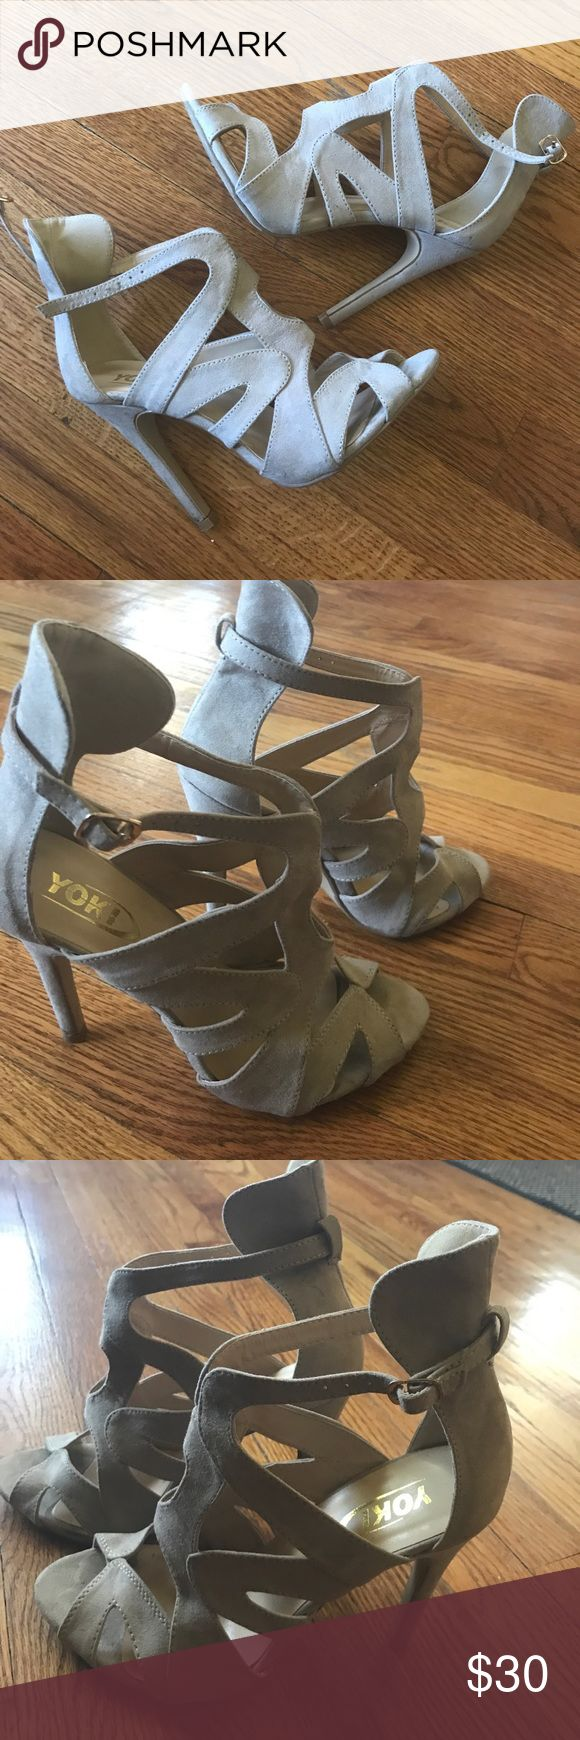 """Beige Caged Shoes Sz 8 Beige Caged shoes Sz 8 Suede, worn 1 time gold buckle on strap.. preowned by me! Heels are approx 3 1/2 to 4"""" Thanks for view! No Offers on this one! Yoki Shoes Sandals"""